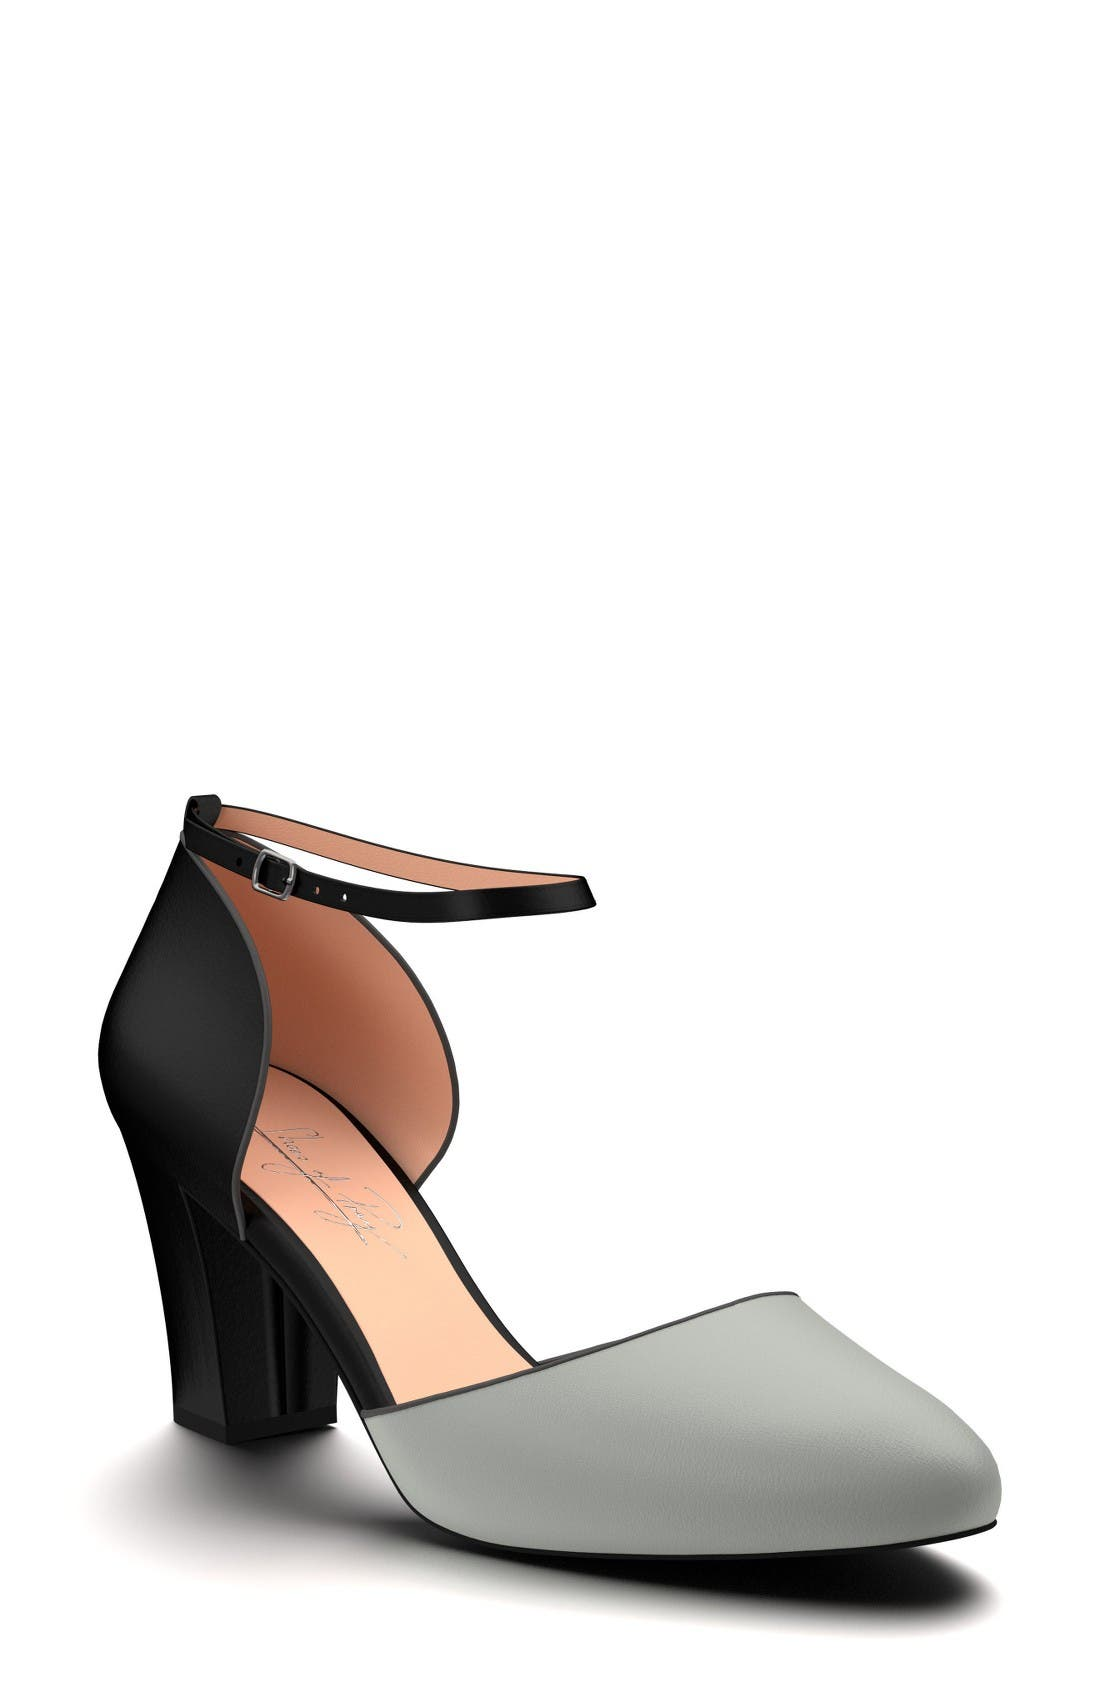 Shoes of Prey Block Heel d'Orsay Pump (Women)